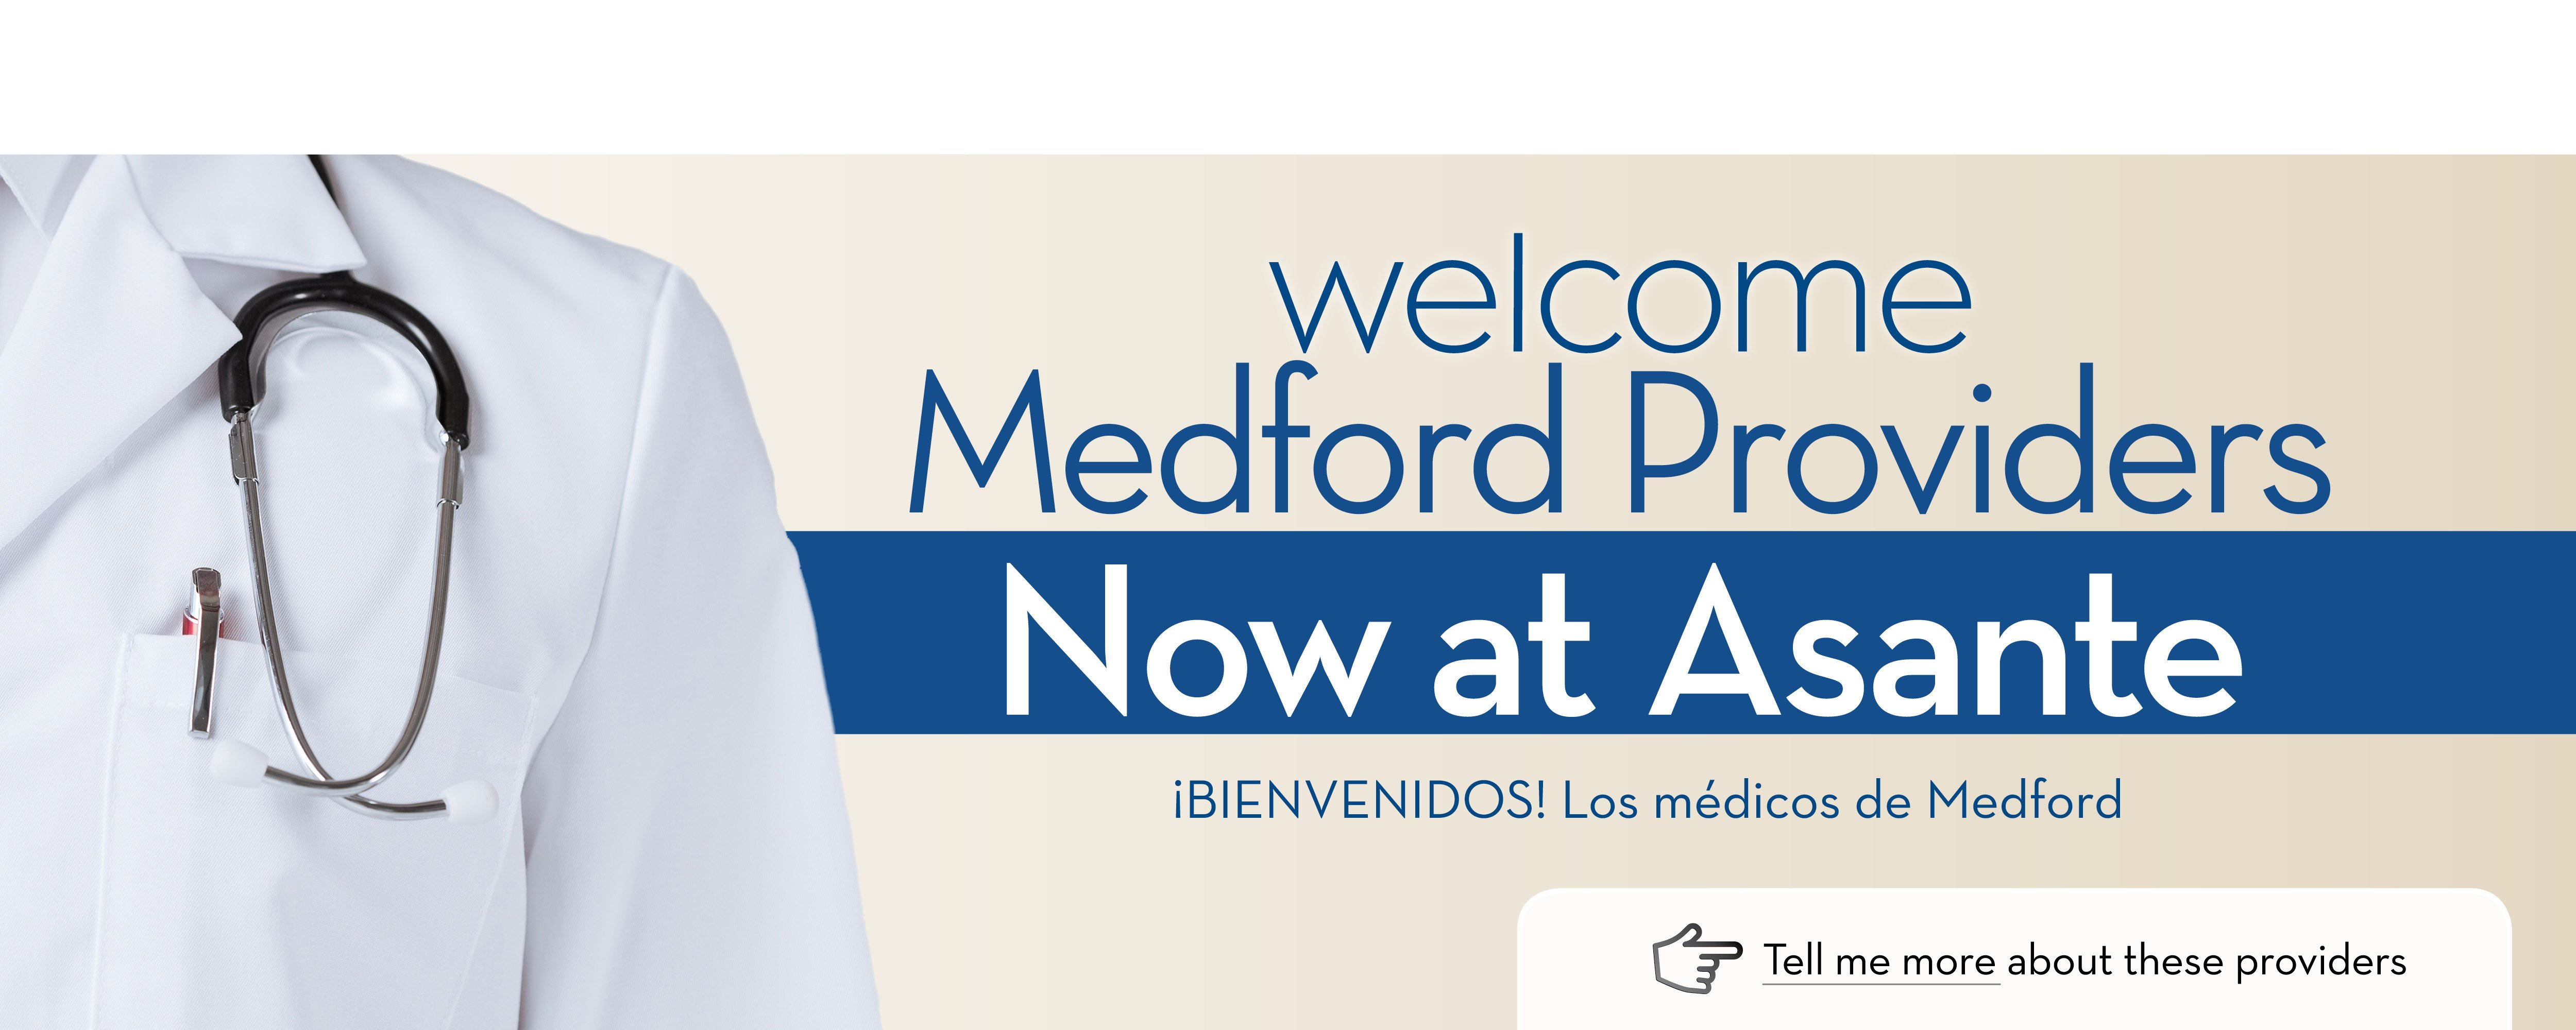 Asante Physician Partners Welcomes Our New Medford Providers, Coming October 2015! Call (541) 789-8000 to schedule an appointment.